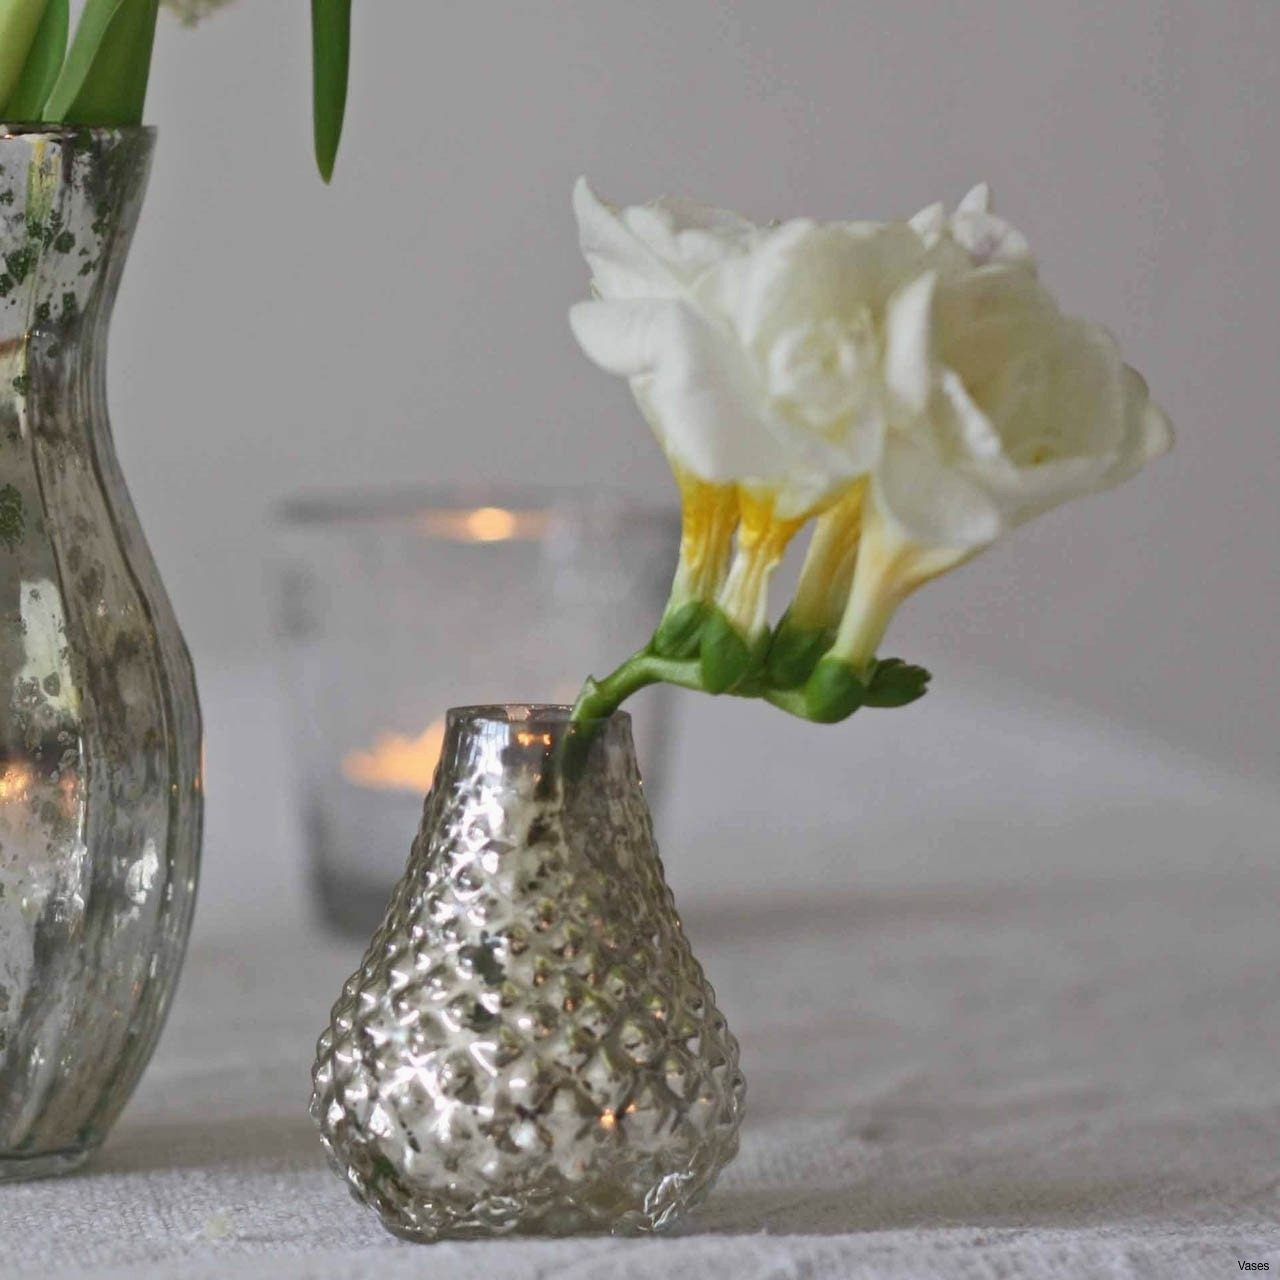 27 Recommended 8 Square Vase